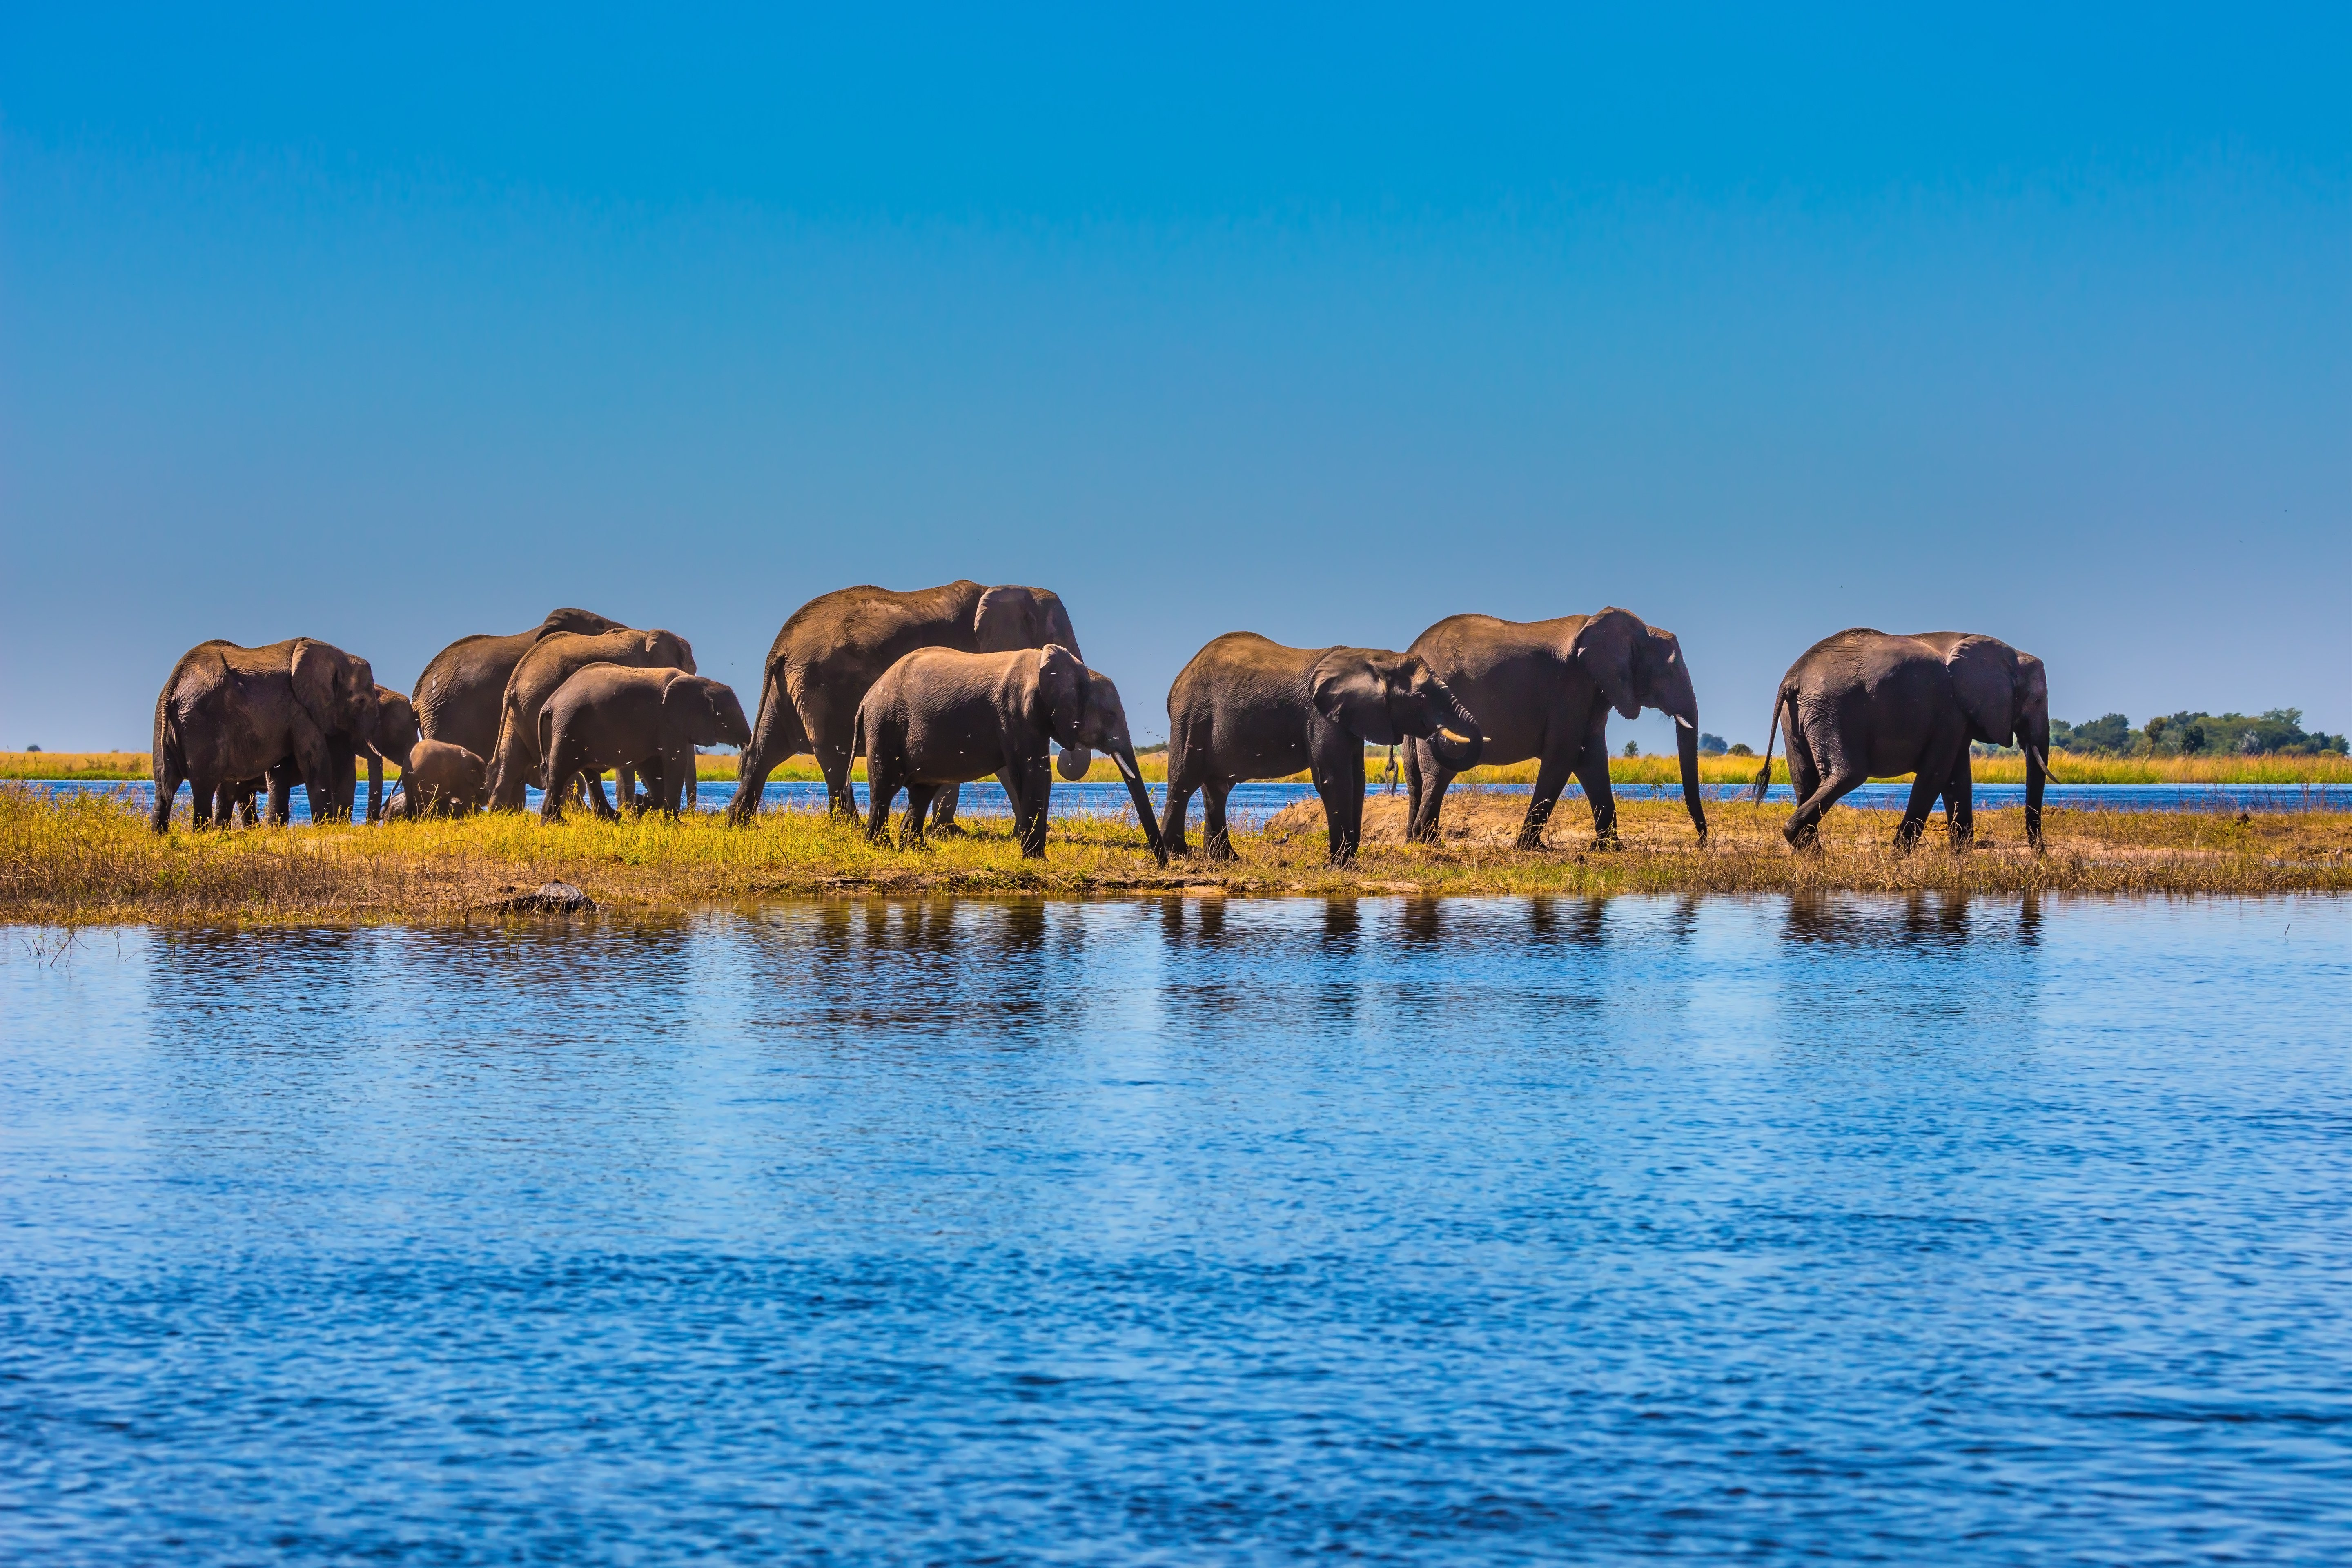 Elephant interaction and safaris